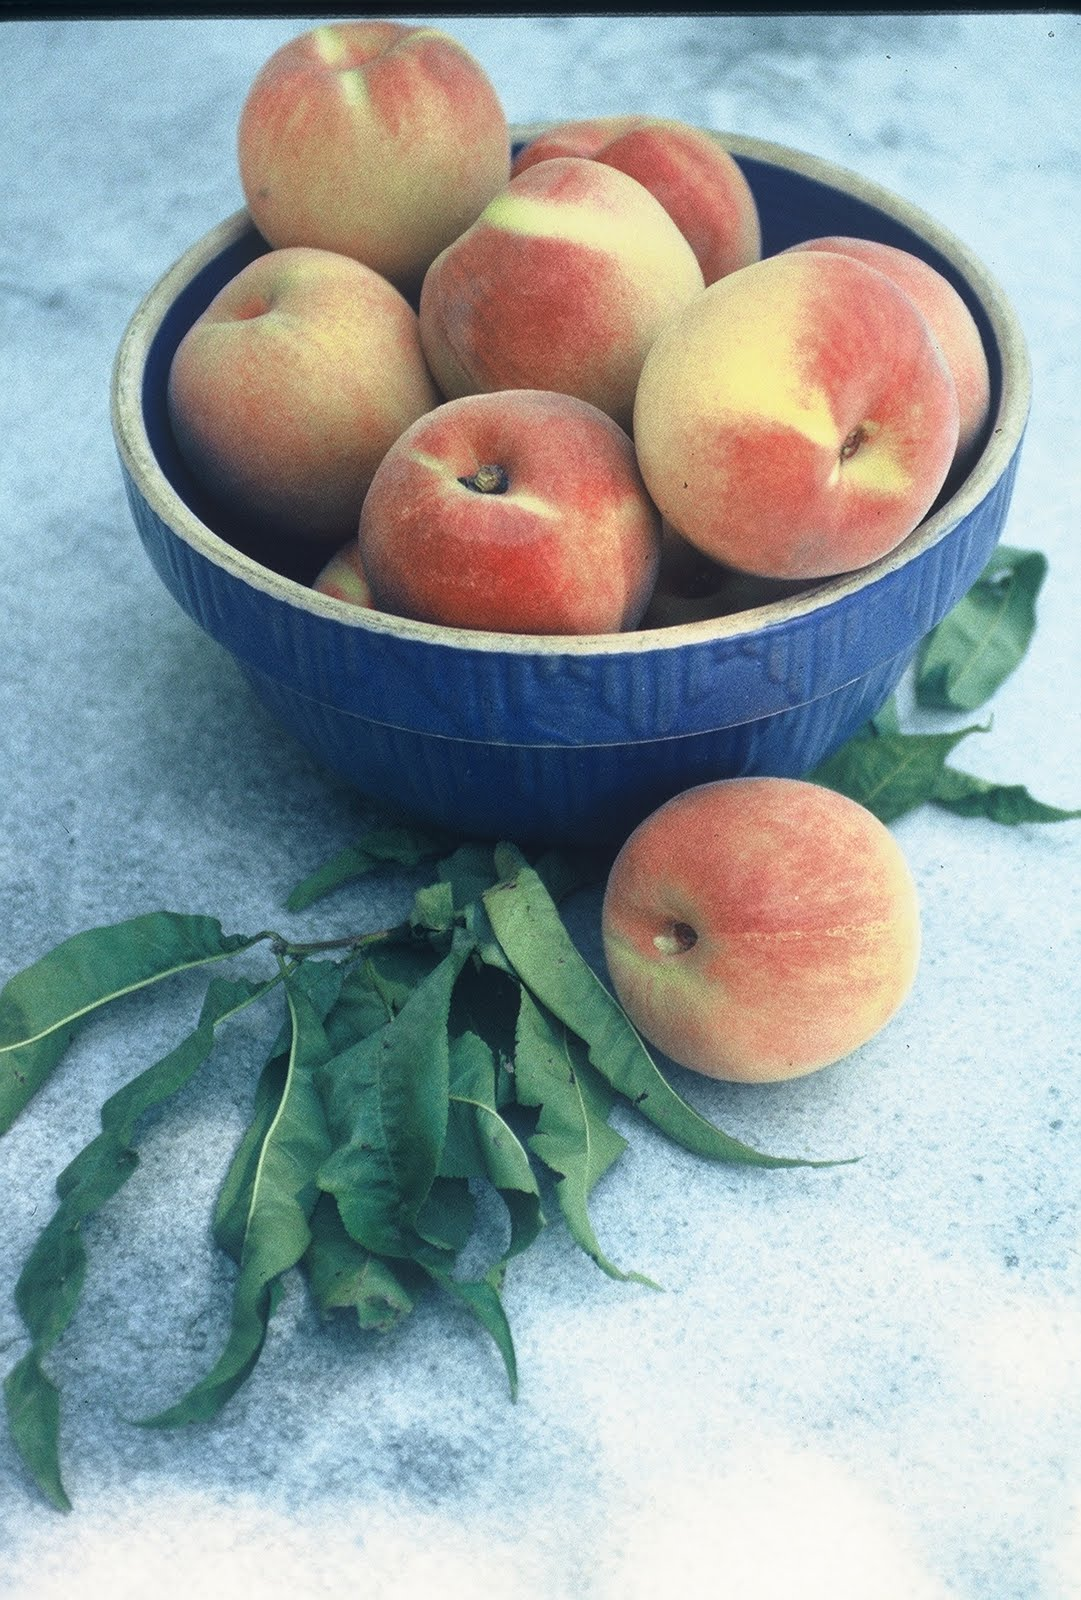 ALFRESCO: A Tale of Fresh Peaches and Peach Leaves